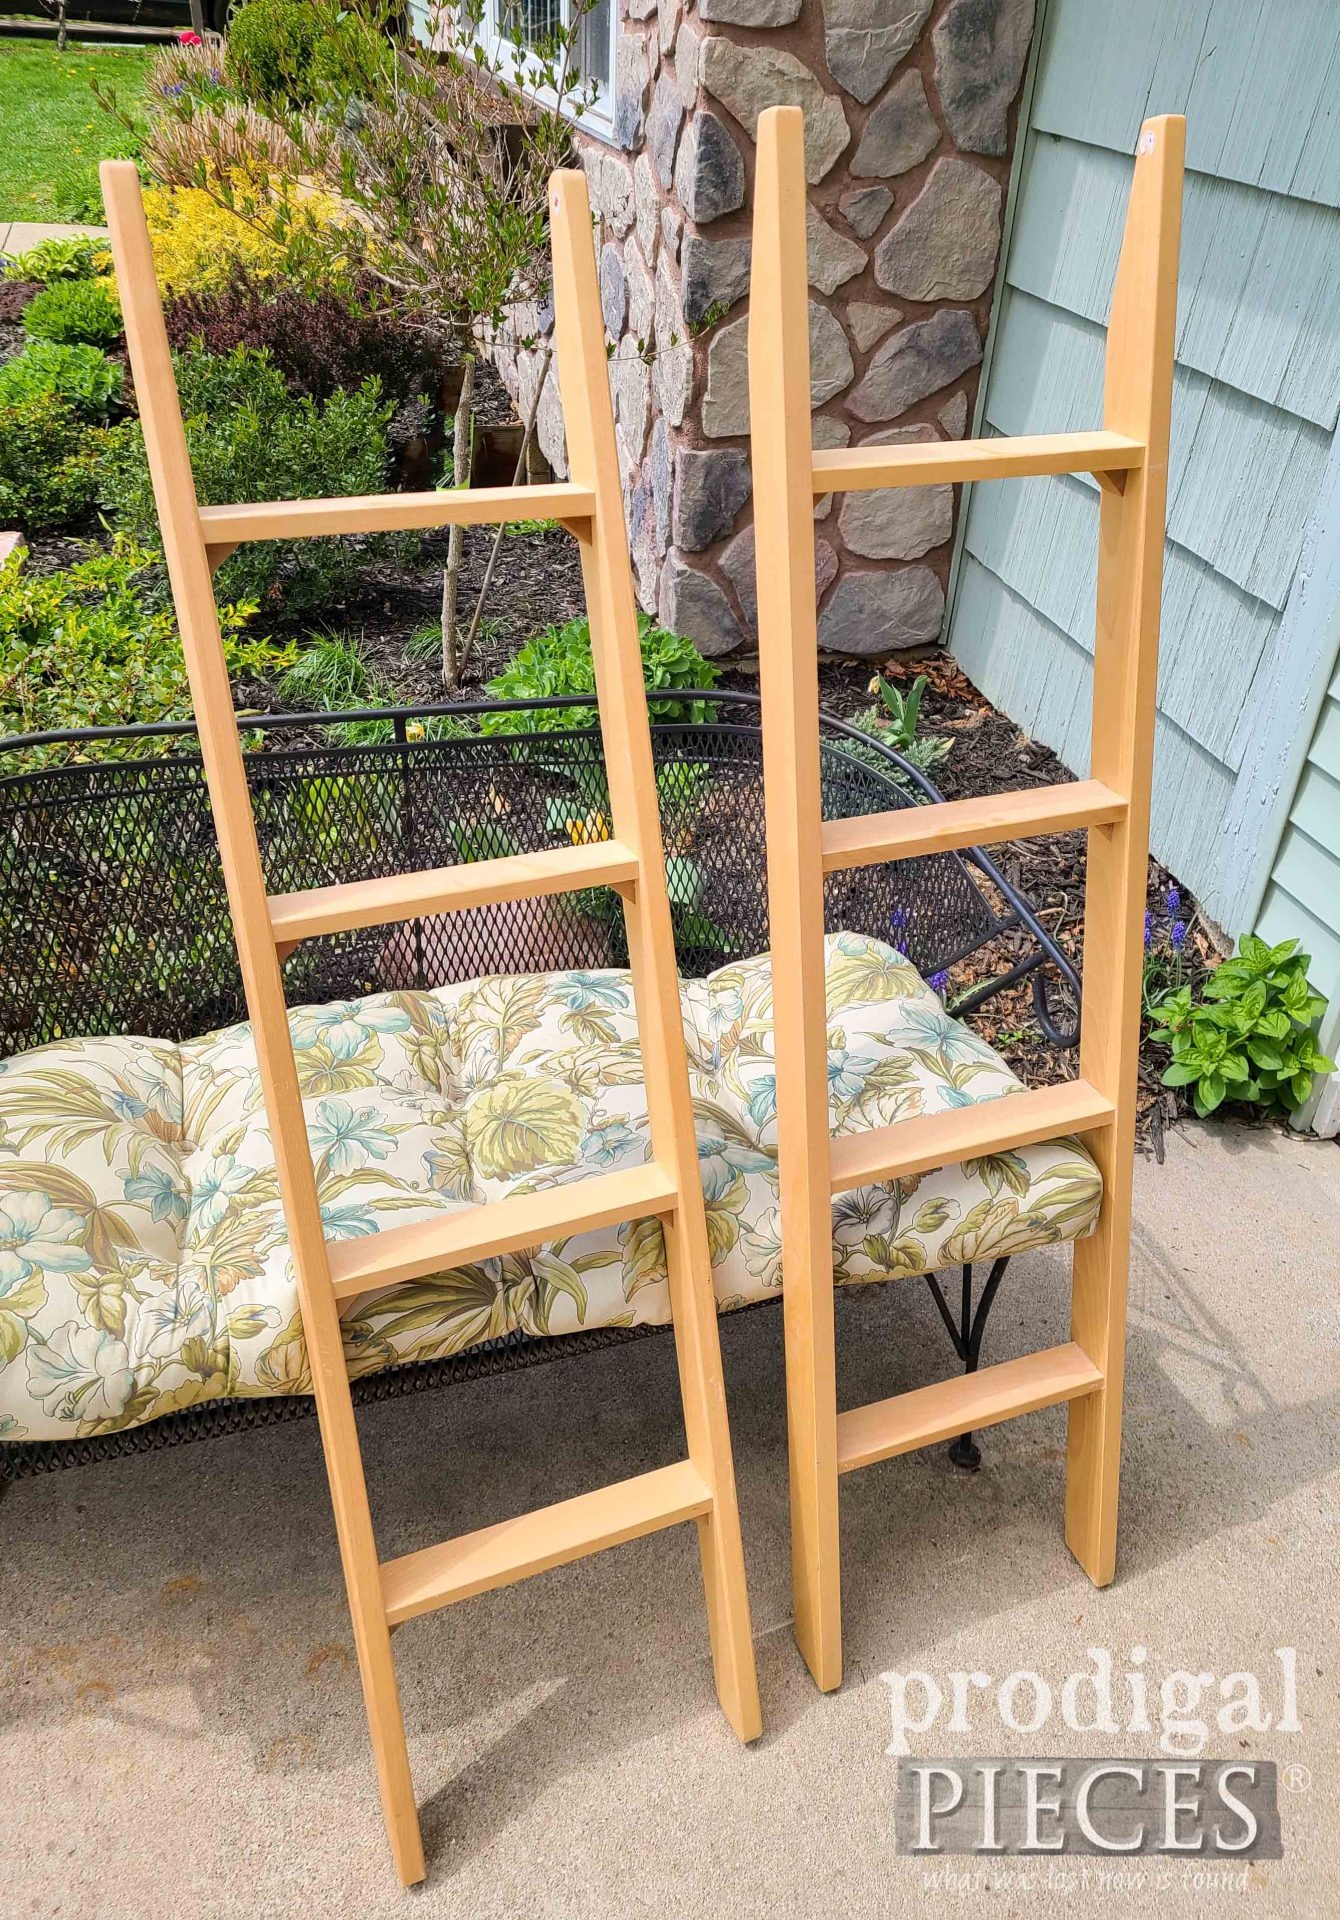 Misfit Bunk Bed Ladders Before | prodigalpieces.com